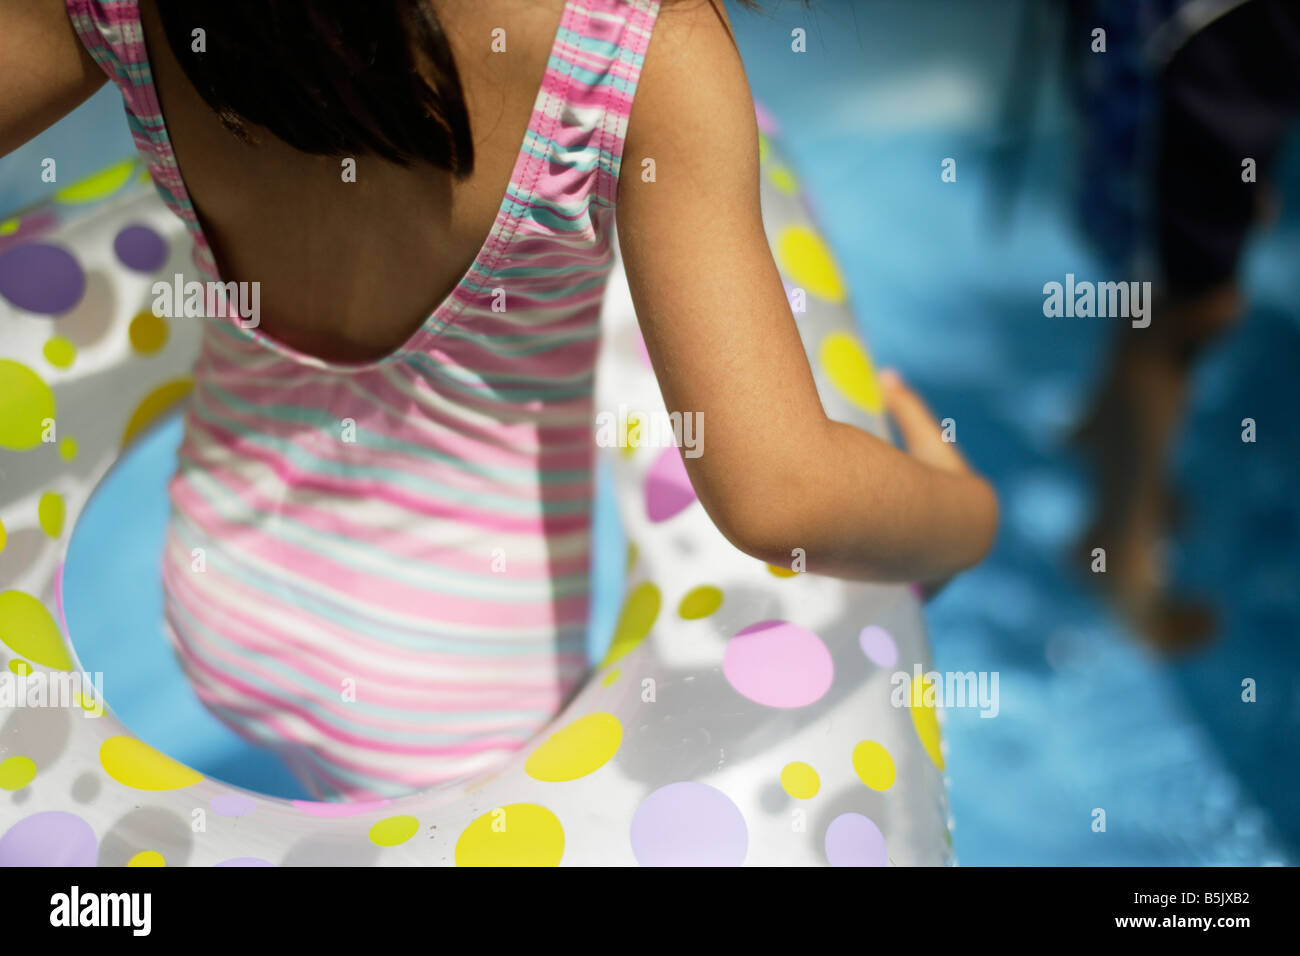 Five year old girl in paddling pool with inflatable rubber ring - Stock Image